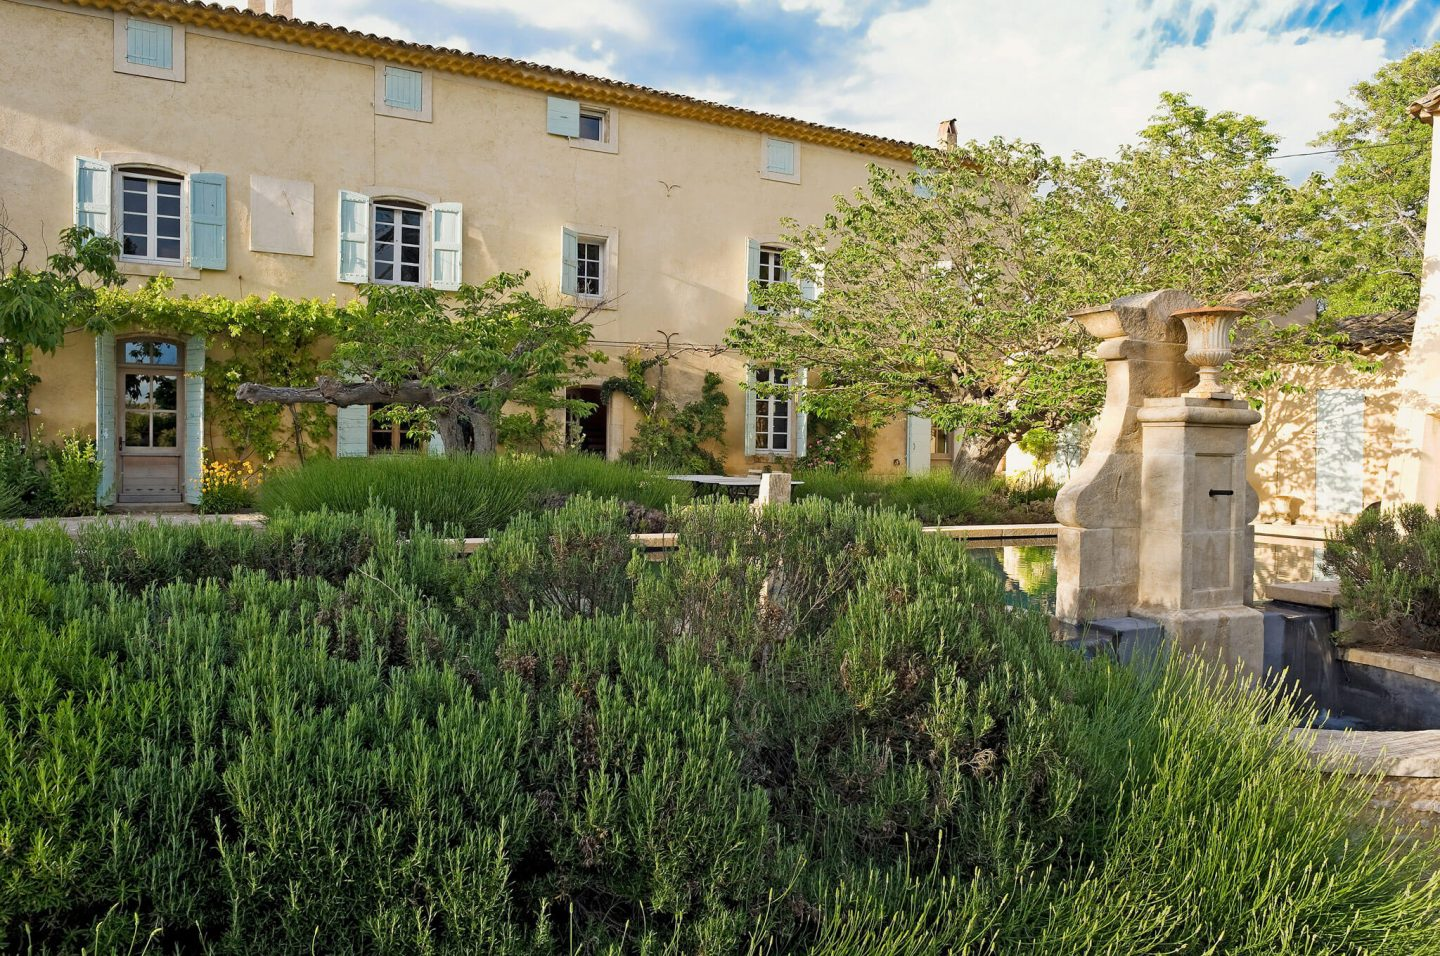 Provence retreat! Inspiring French country interiors, enchanting gardens, and rich architectural details in a historical and luxurious vacation rental from HAVEN IN. #provence #frenchchateau #frenchcountry #frenchfarmhouse #interiordesign #architecture #european #counrtryhouse #havenin #rusticelegance